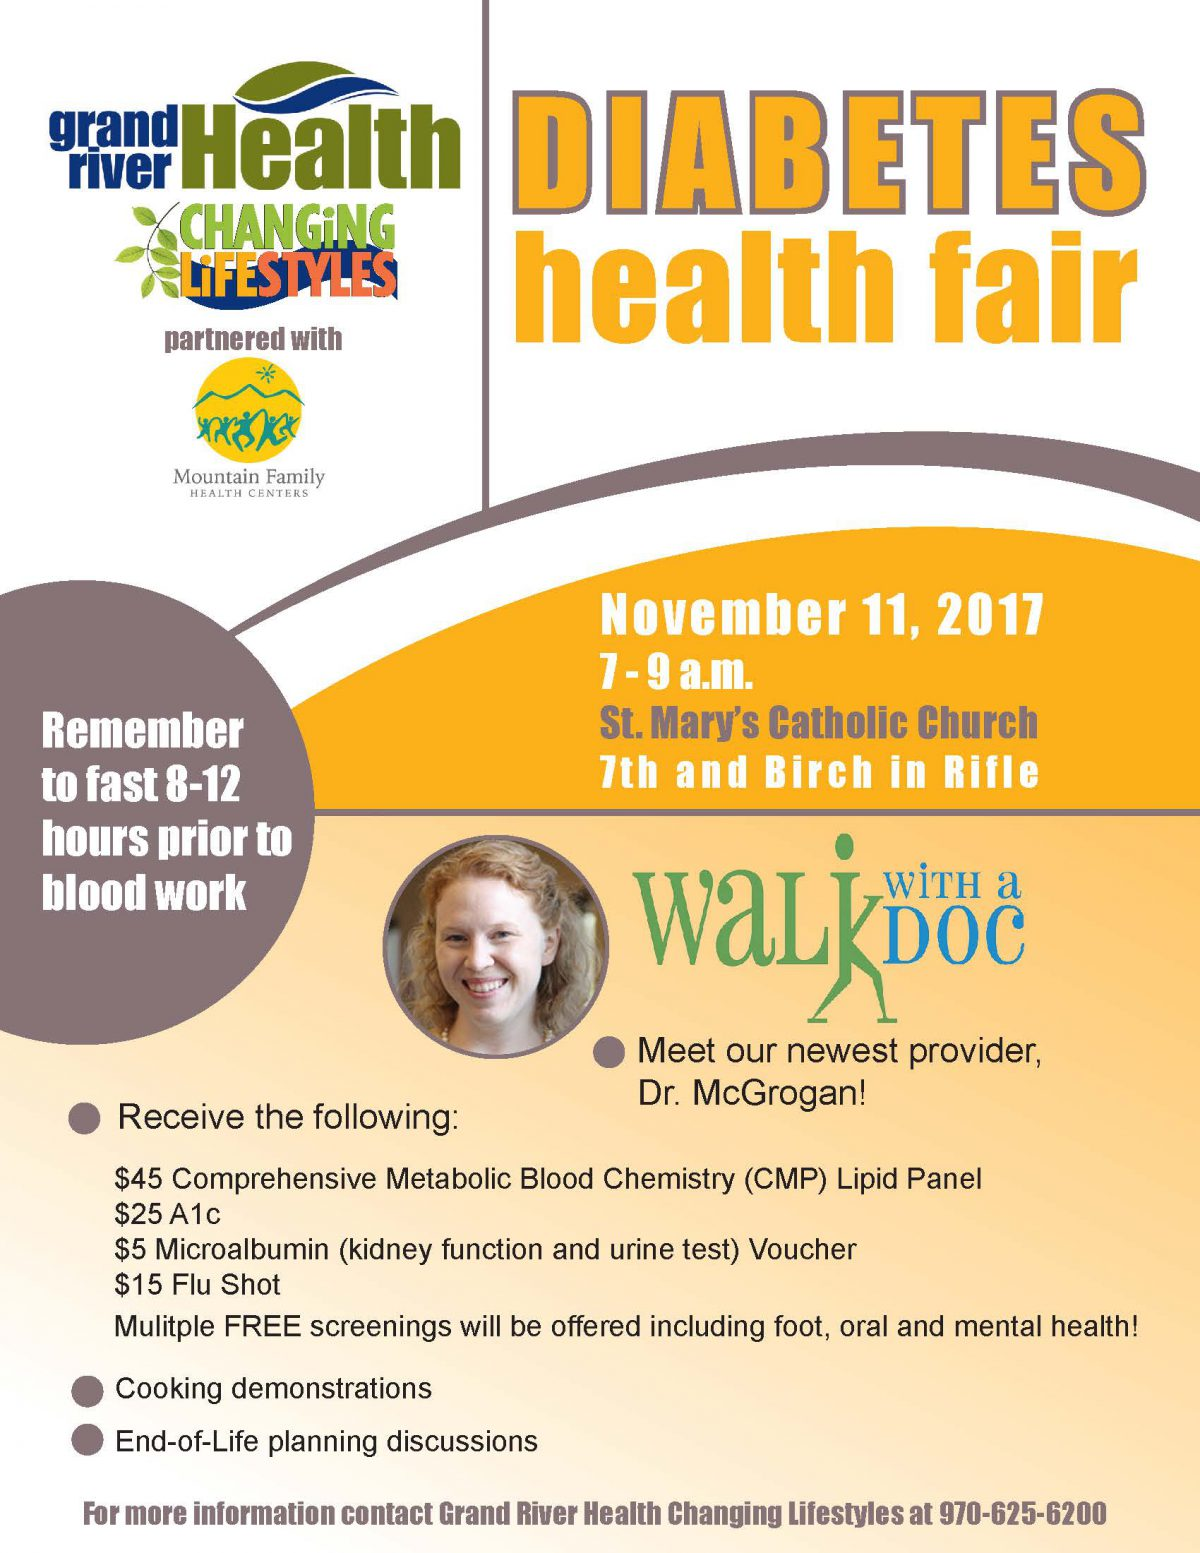 Diabetes-Health-Fair-Flyer-2017_Page_1-1200x1553.jpg